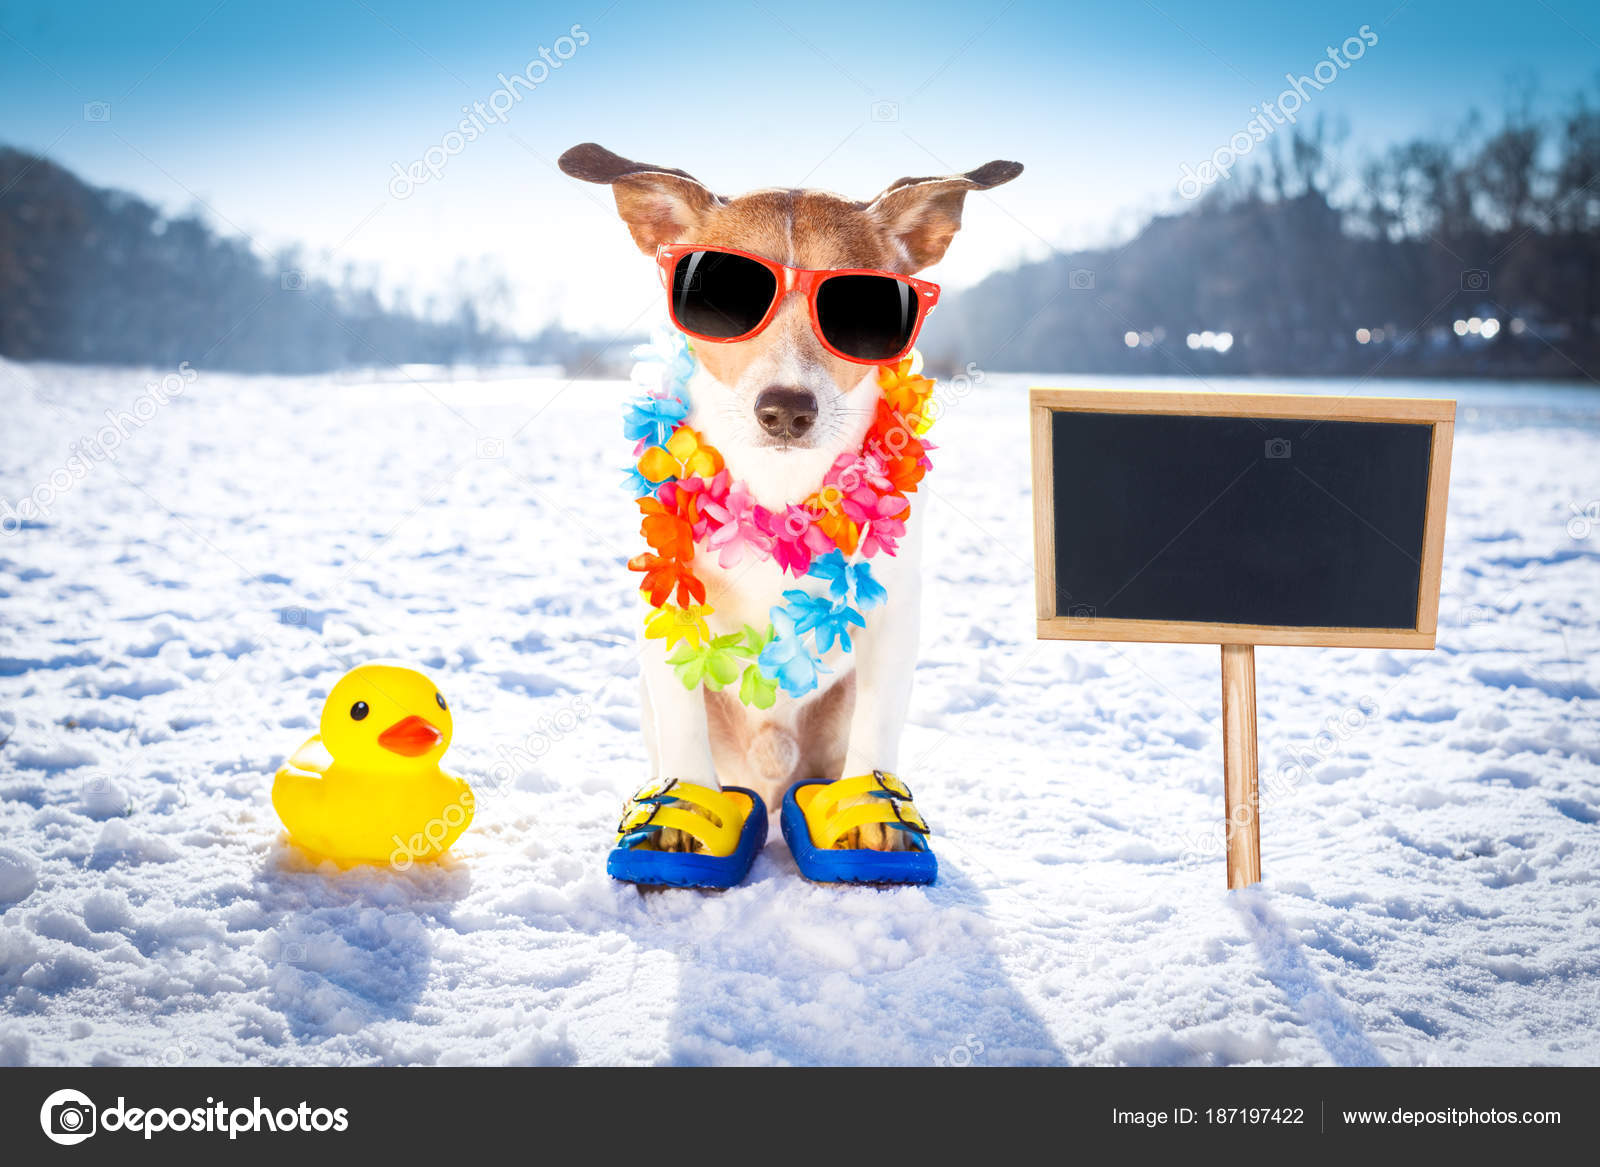 Cool Funny Freezing Icy Dog In Snow With Sunglasses And Flower Chain Waiting For The Summer To Come Very Soon Banner Side Photo By Damedeeso